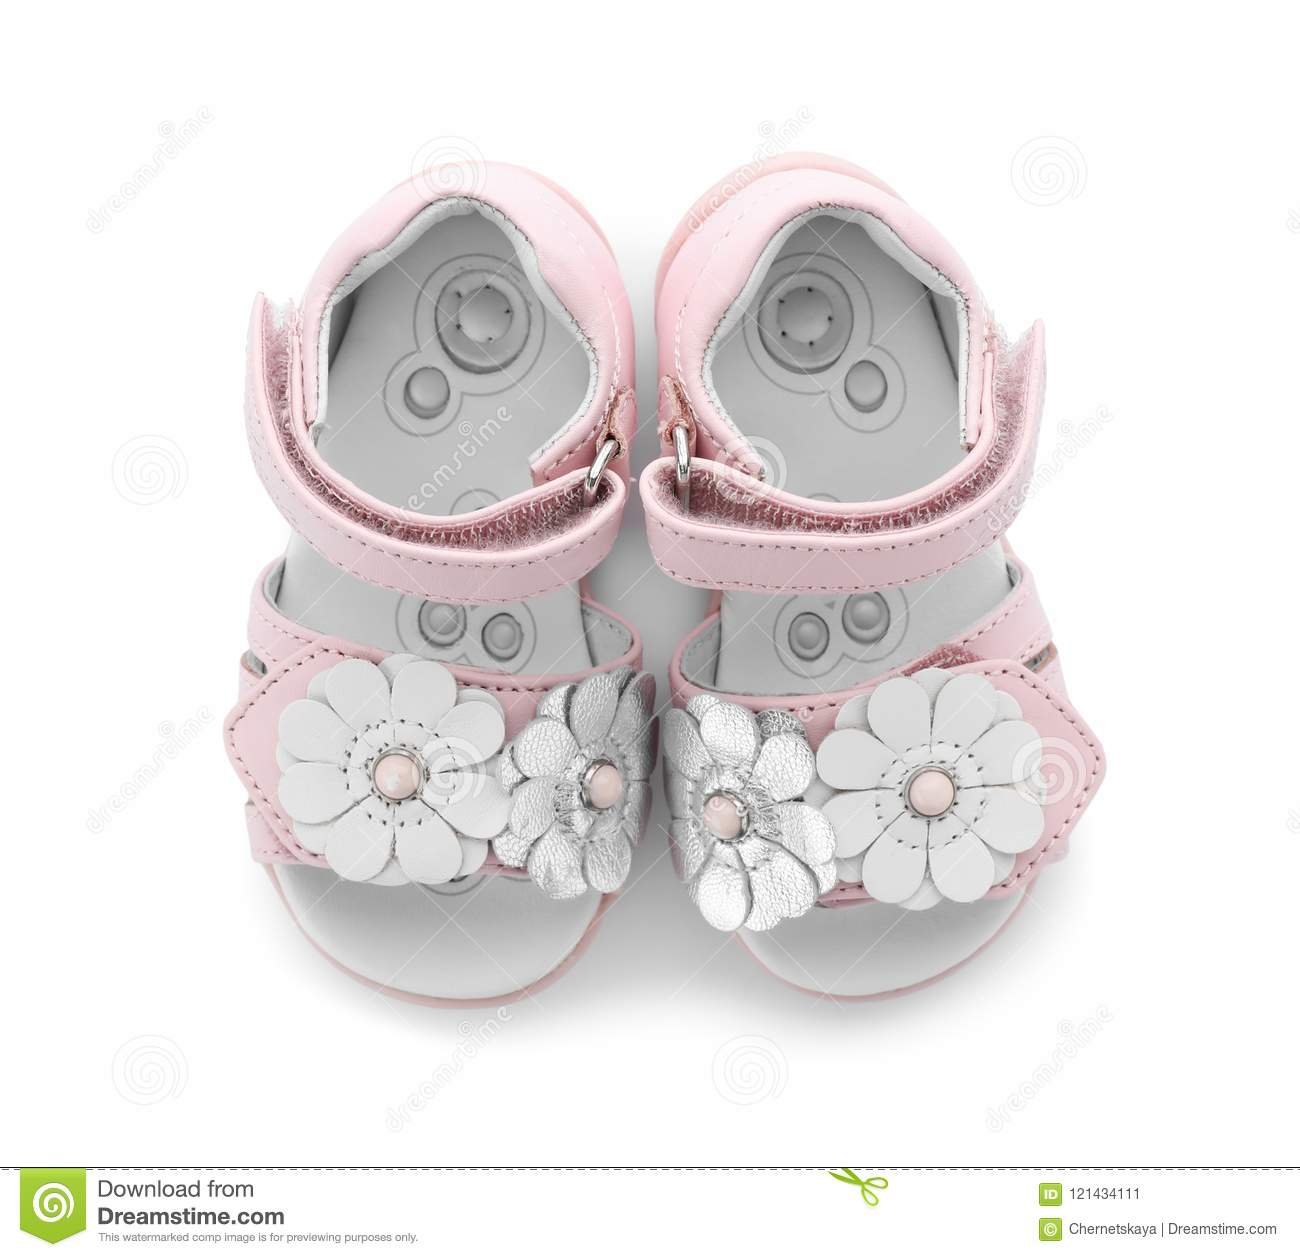 4e79105fd7489e Pair Of Cute Baby Sandals Decorated With Flowers Stock Image - Image ...